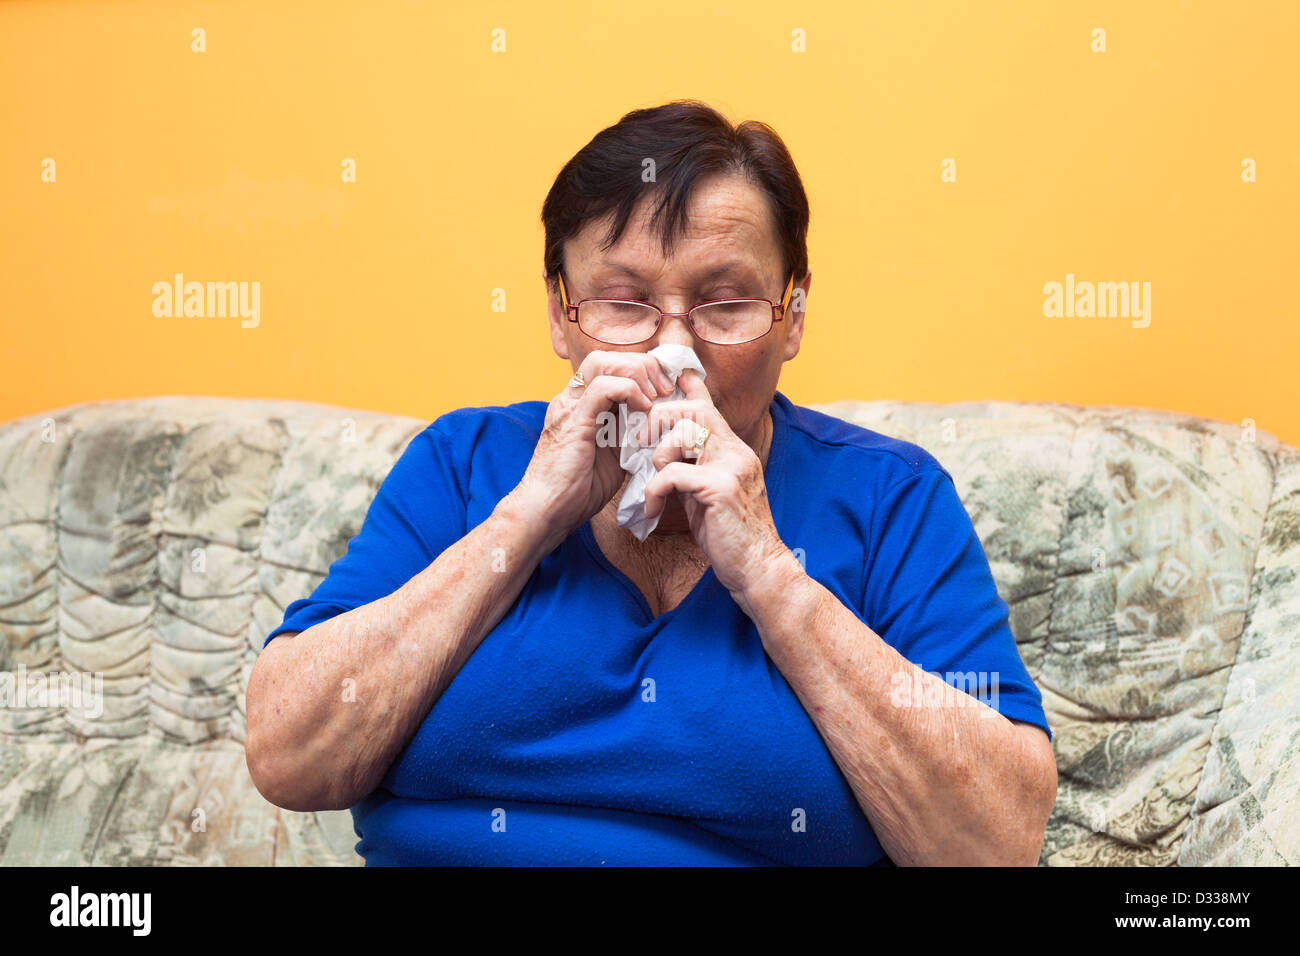 Sick senior woman sitting on sofa and blowing her nose. - Stock Image